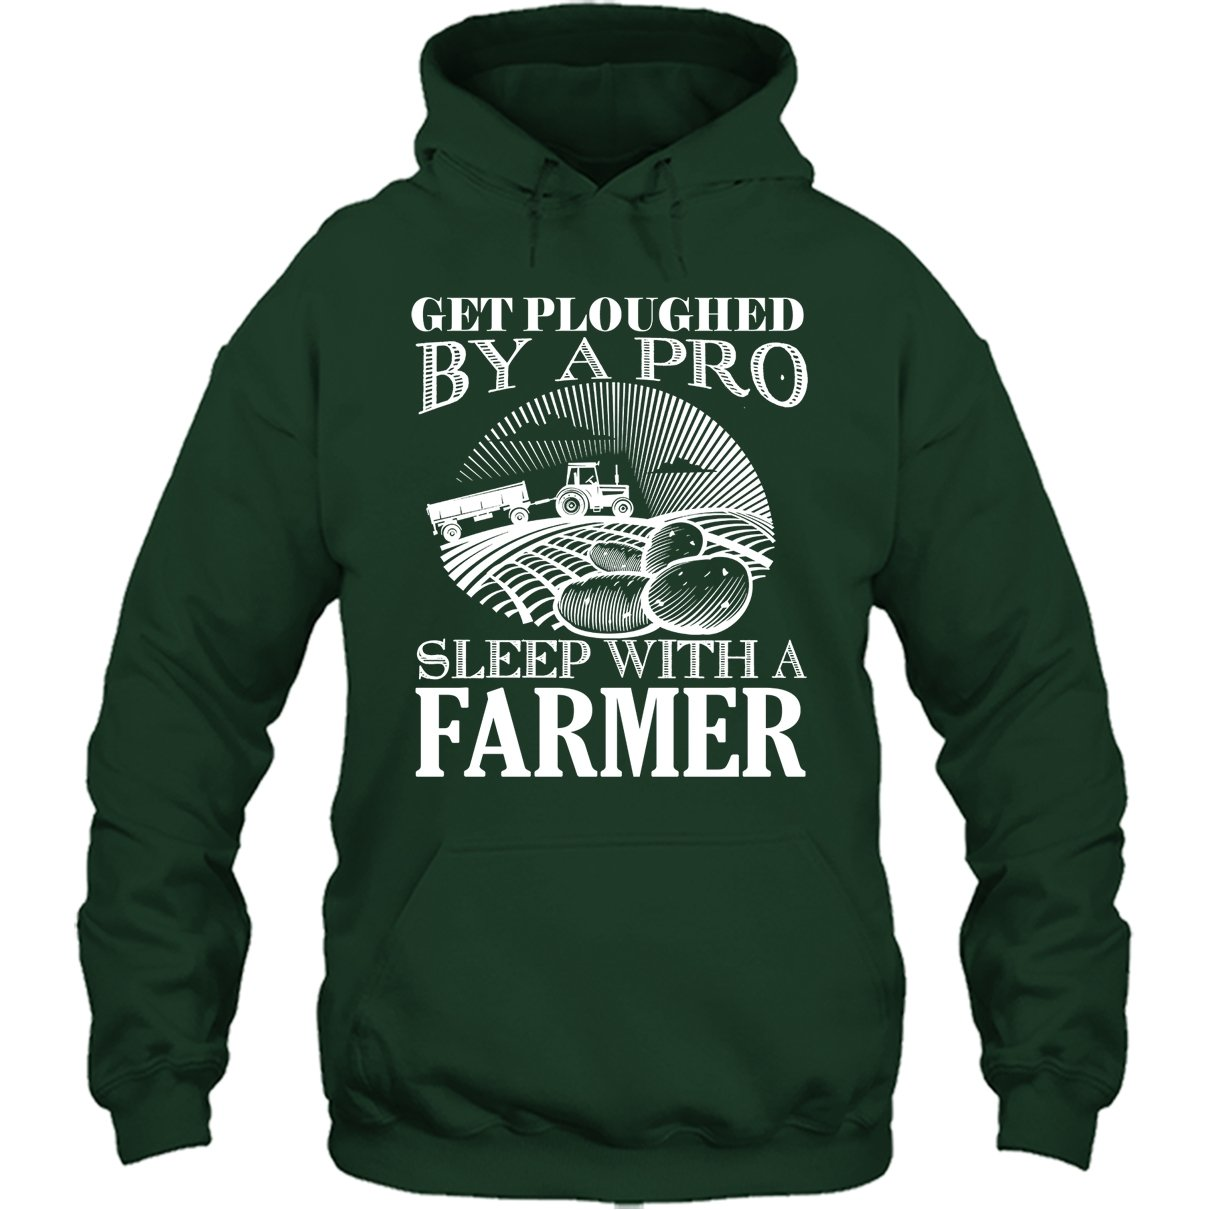 Farmer T Shirts Design Cool Sleep with A Farmer Tee Shirt Best Gift for Someone Special